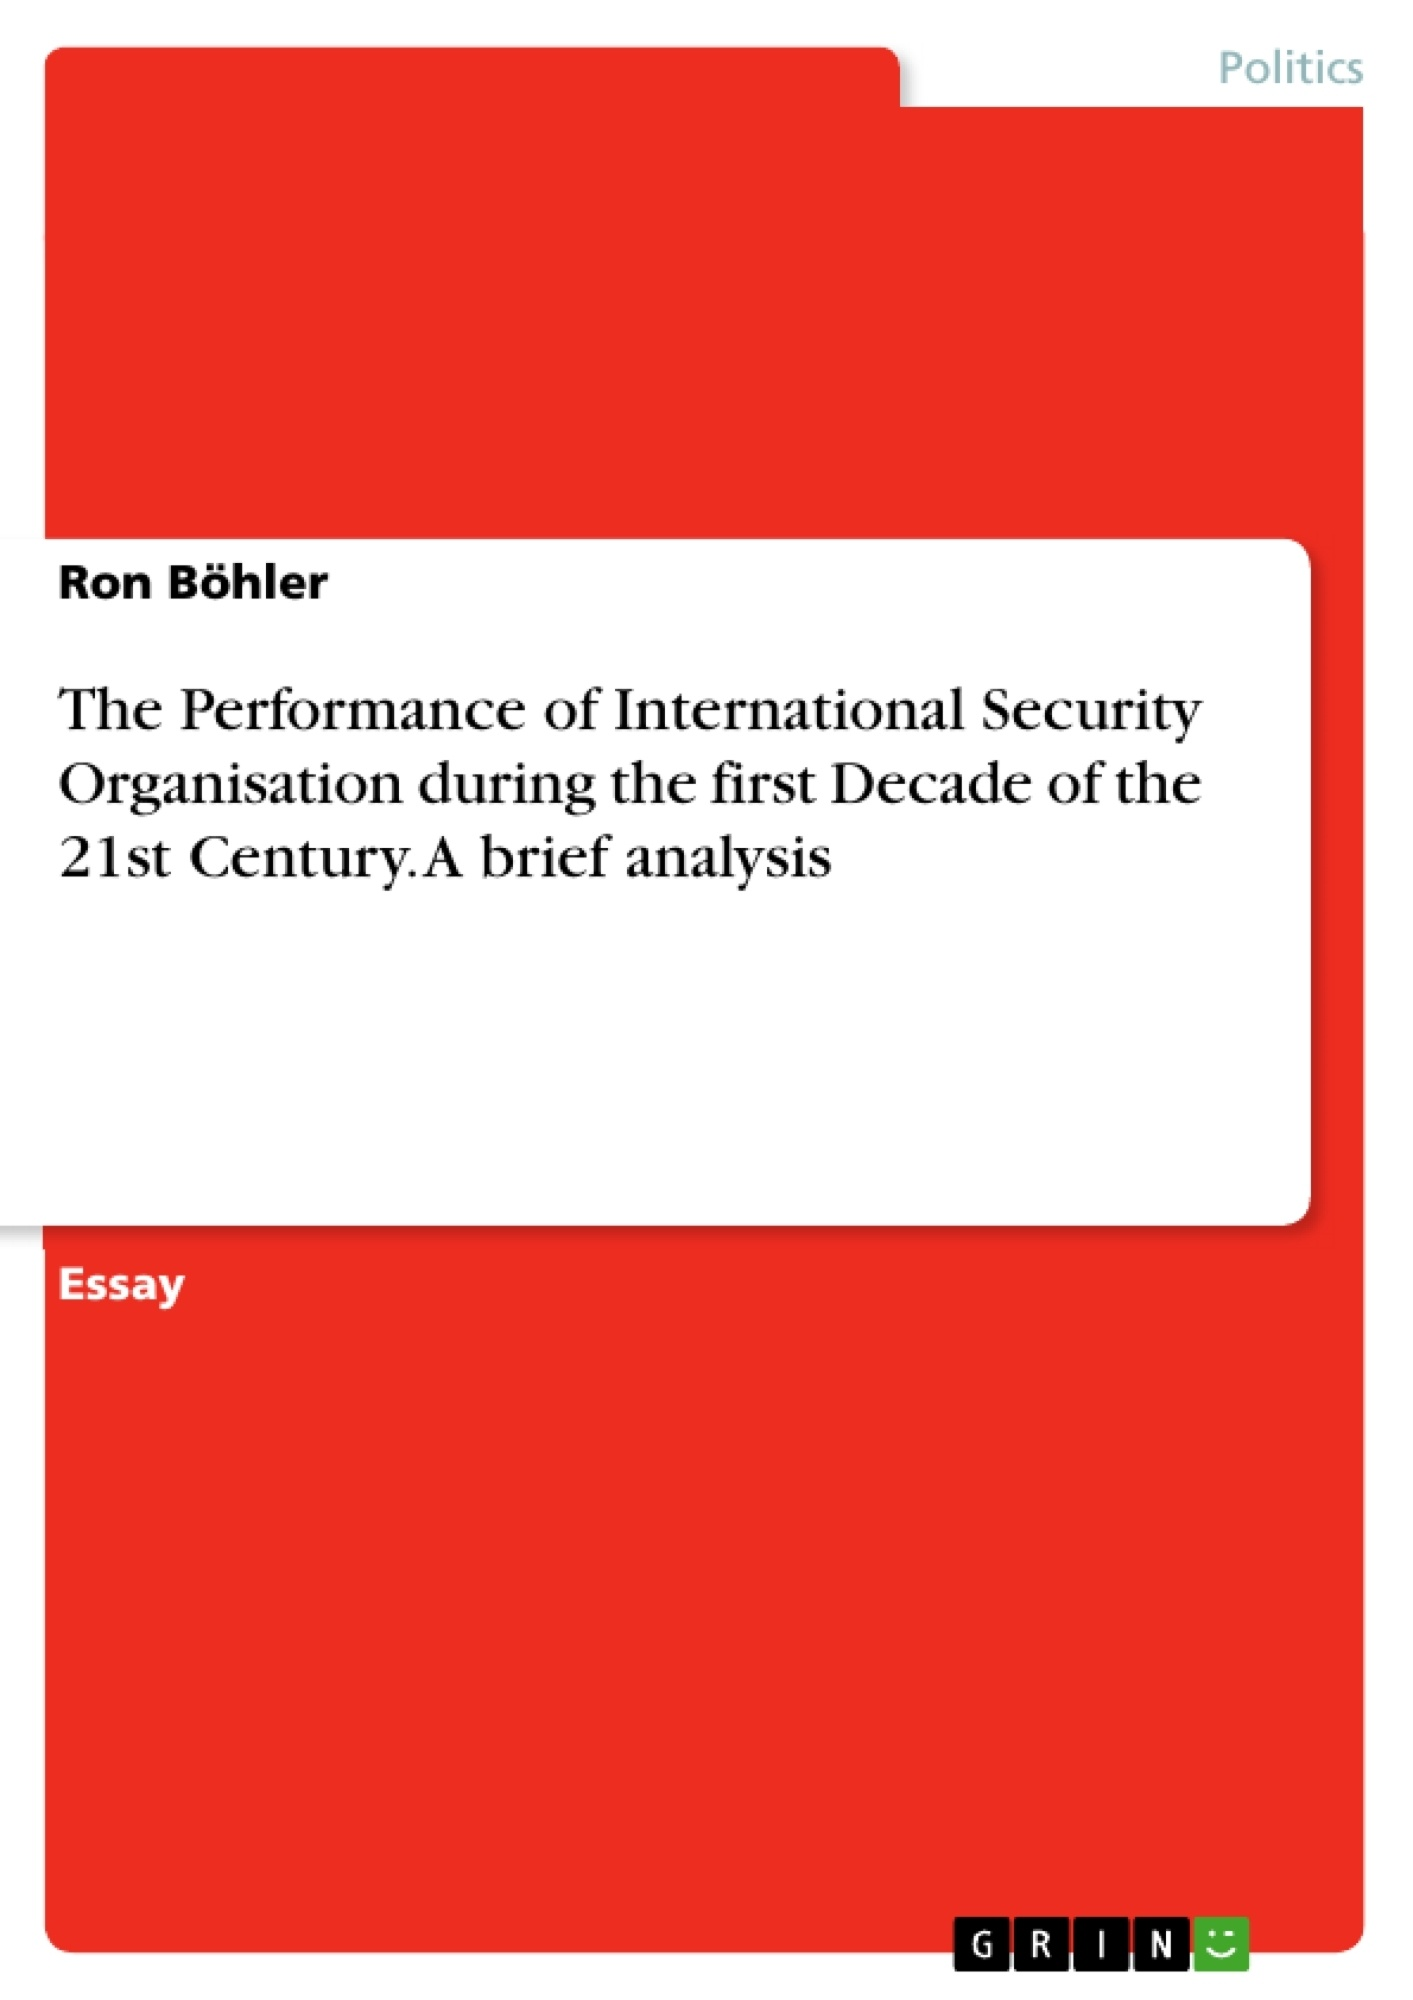 Title: The Performance of International Security Organisation during the first Decade of the 21st Century. A brief analysis